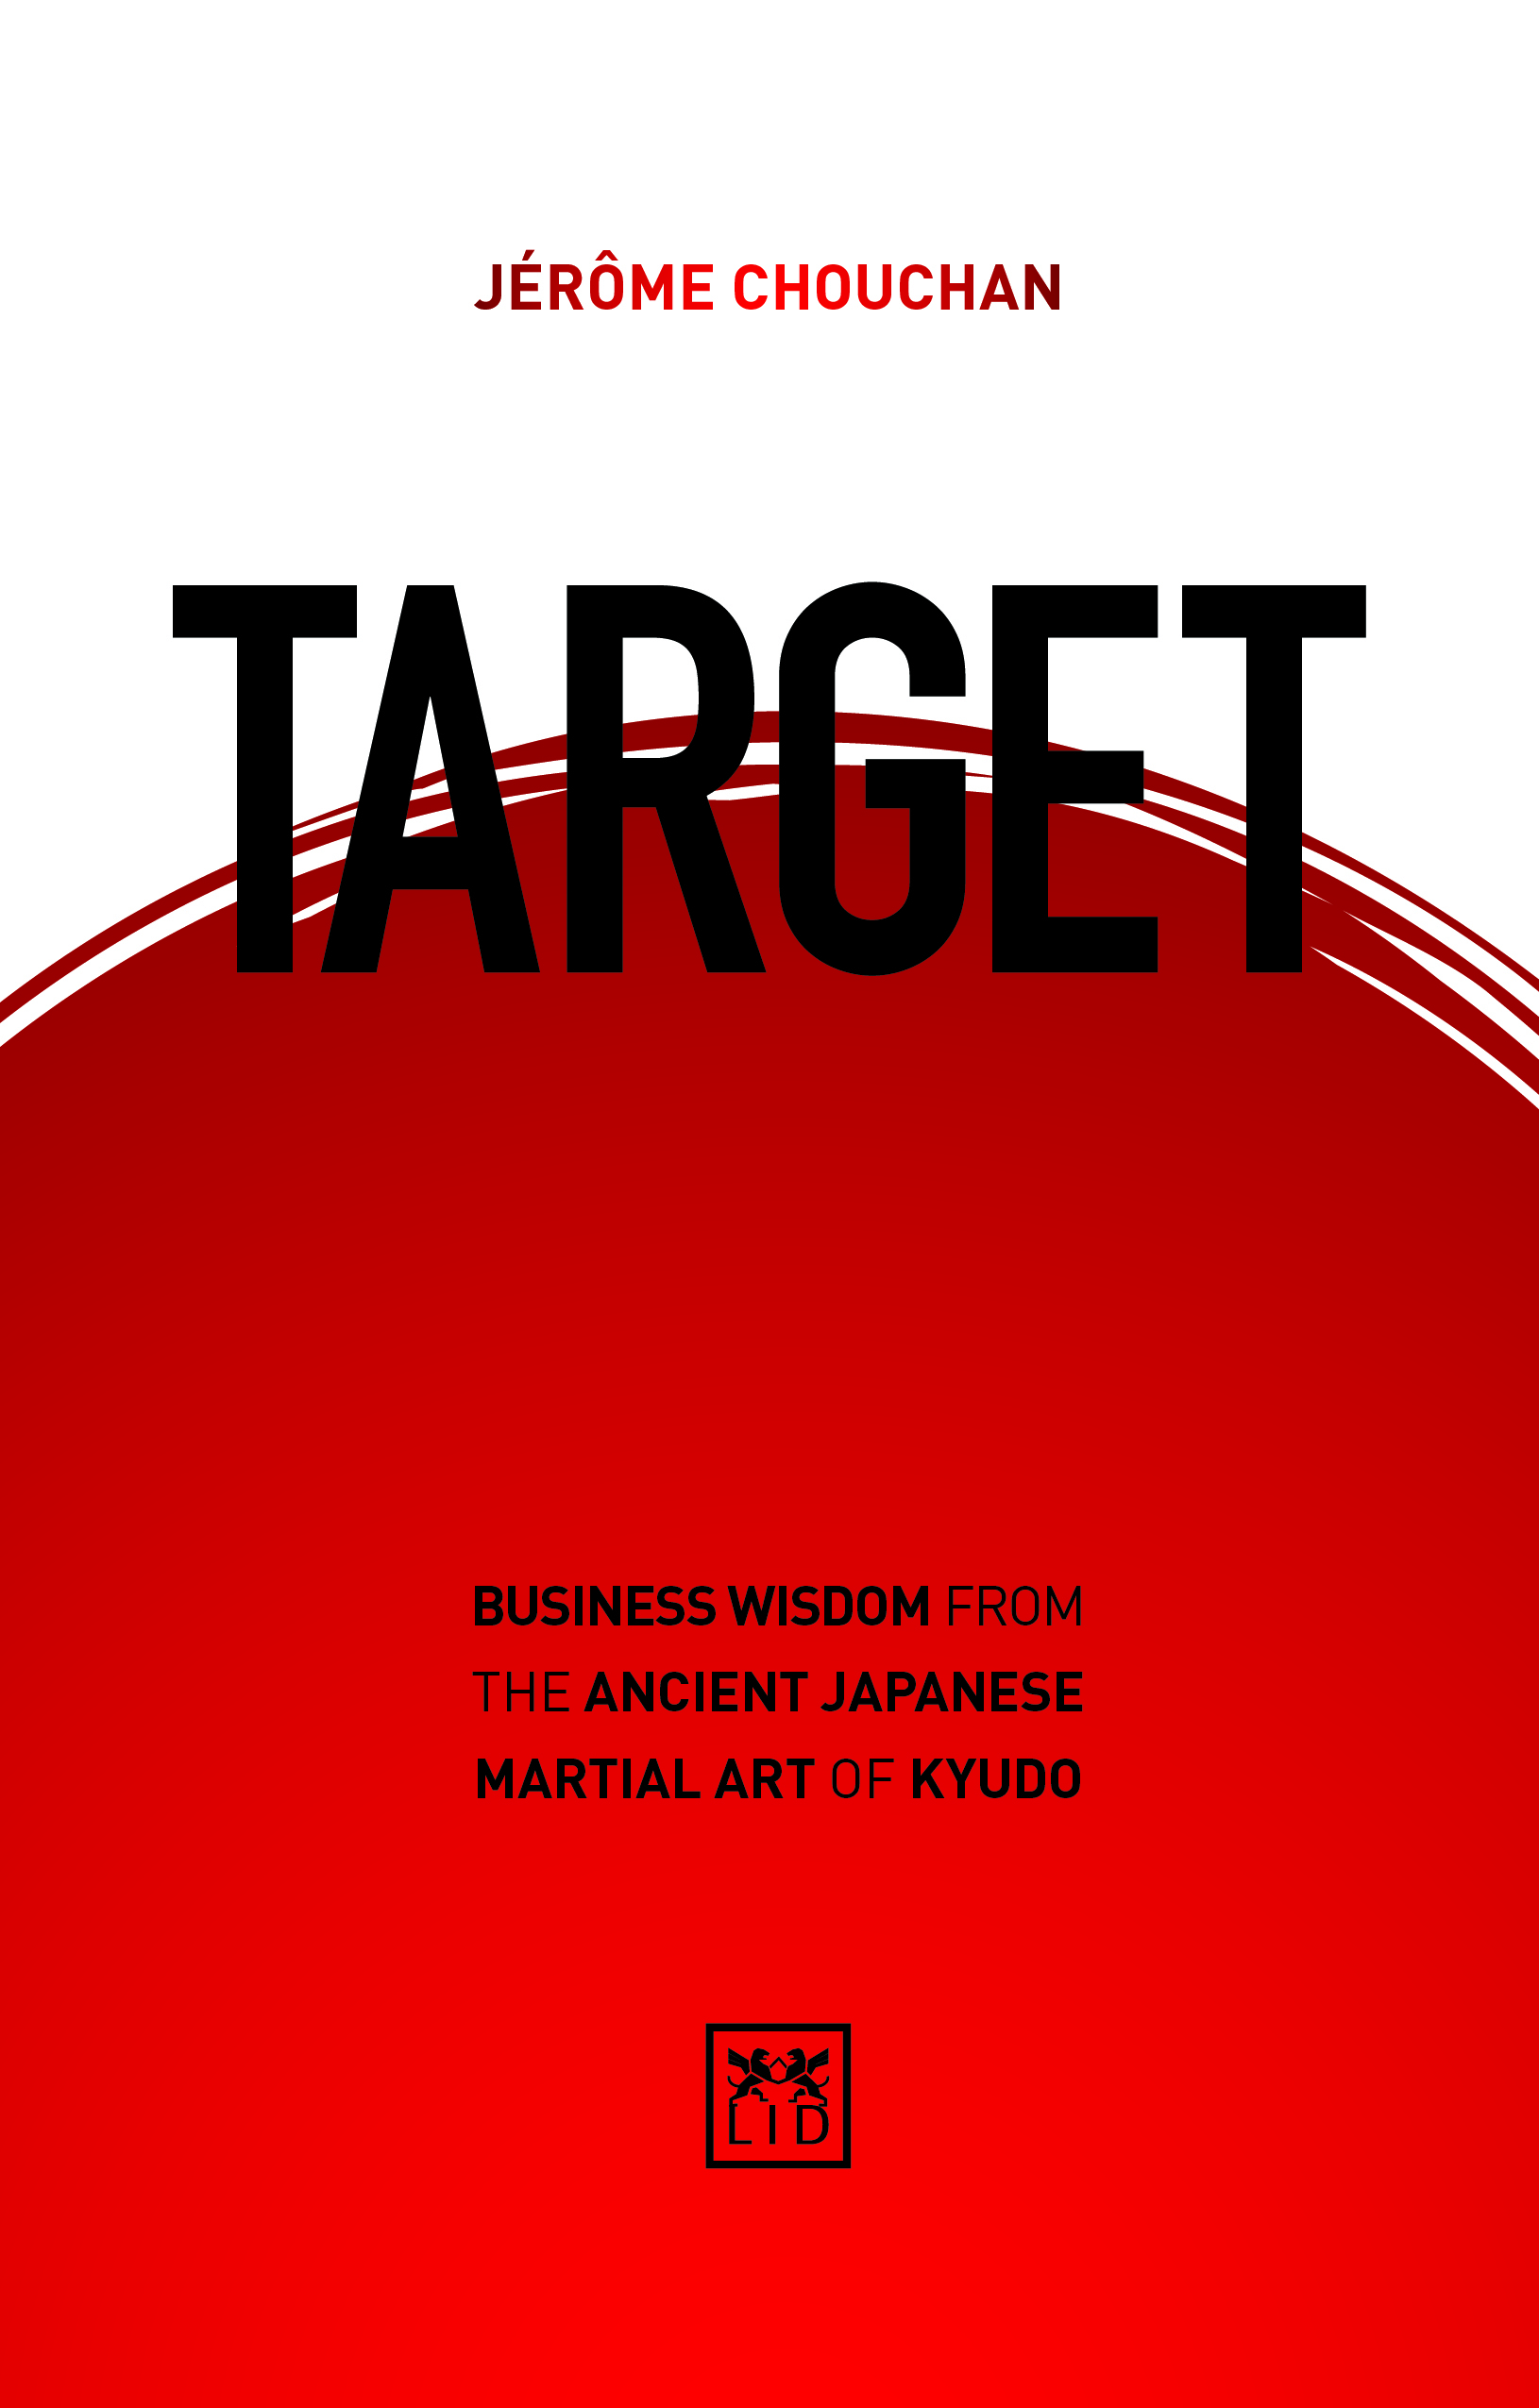 Target: Business Wisdom from the Ancient Japanese Martial Art of Kyudo